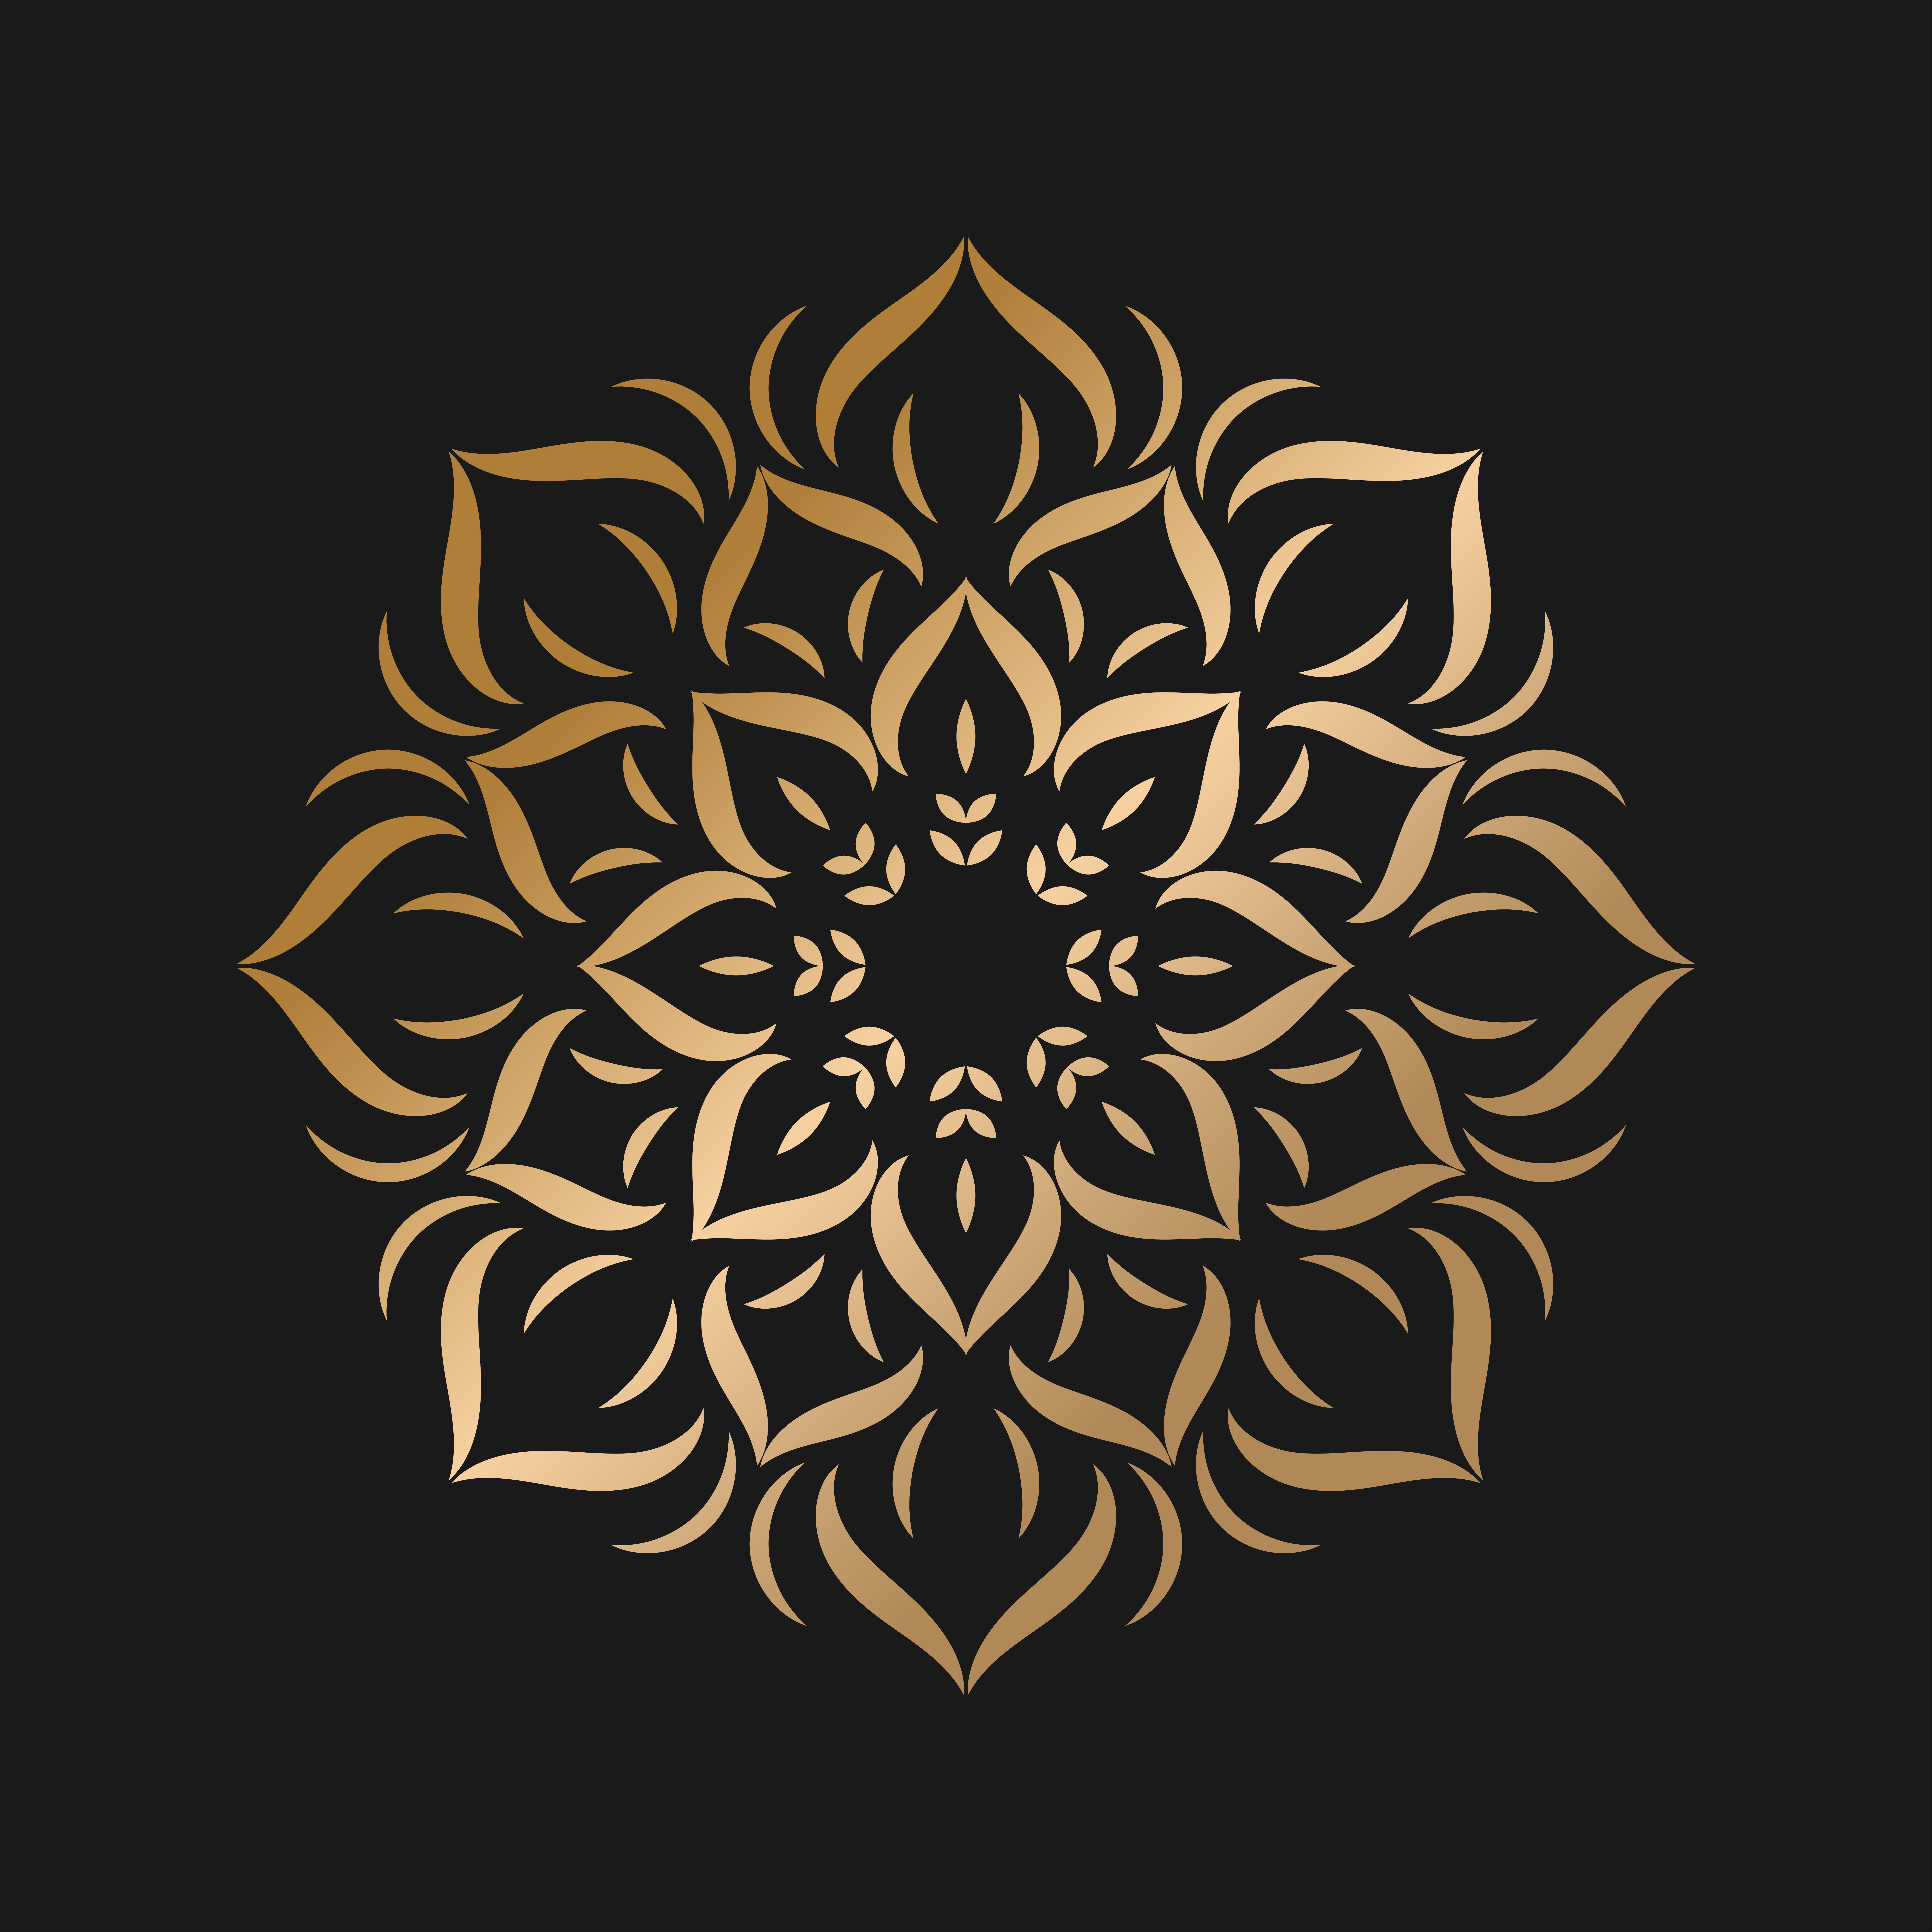 Simple golden mandala with flower style